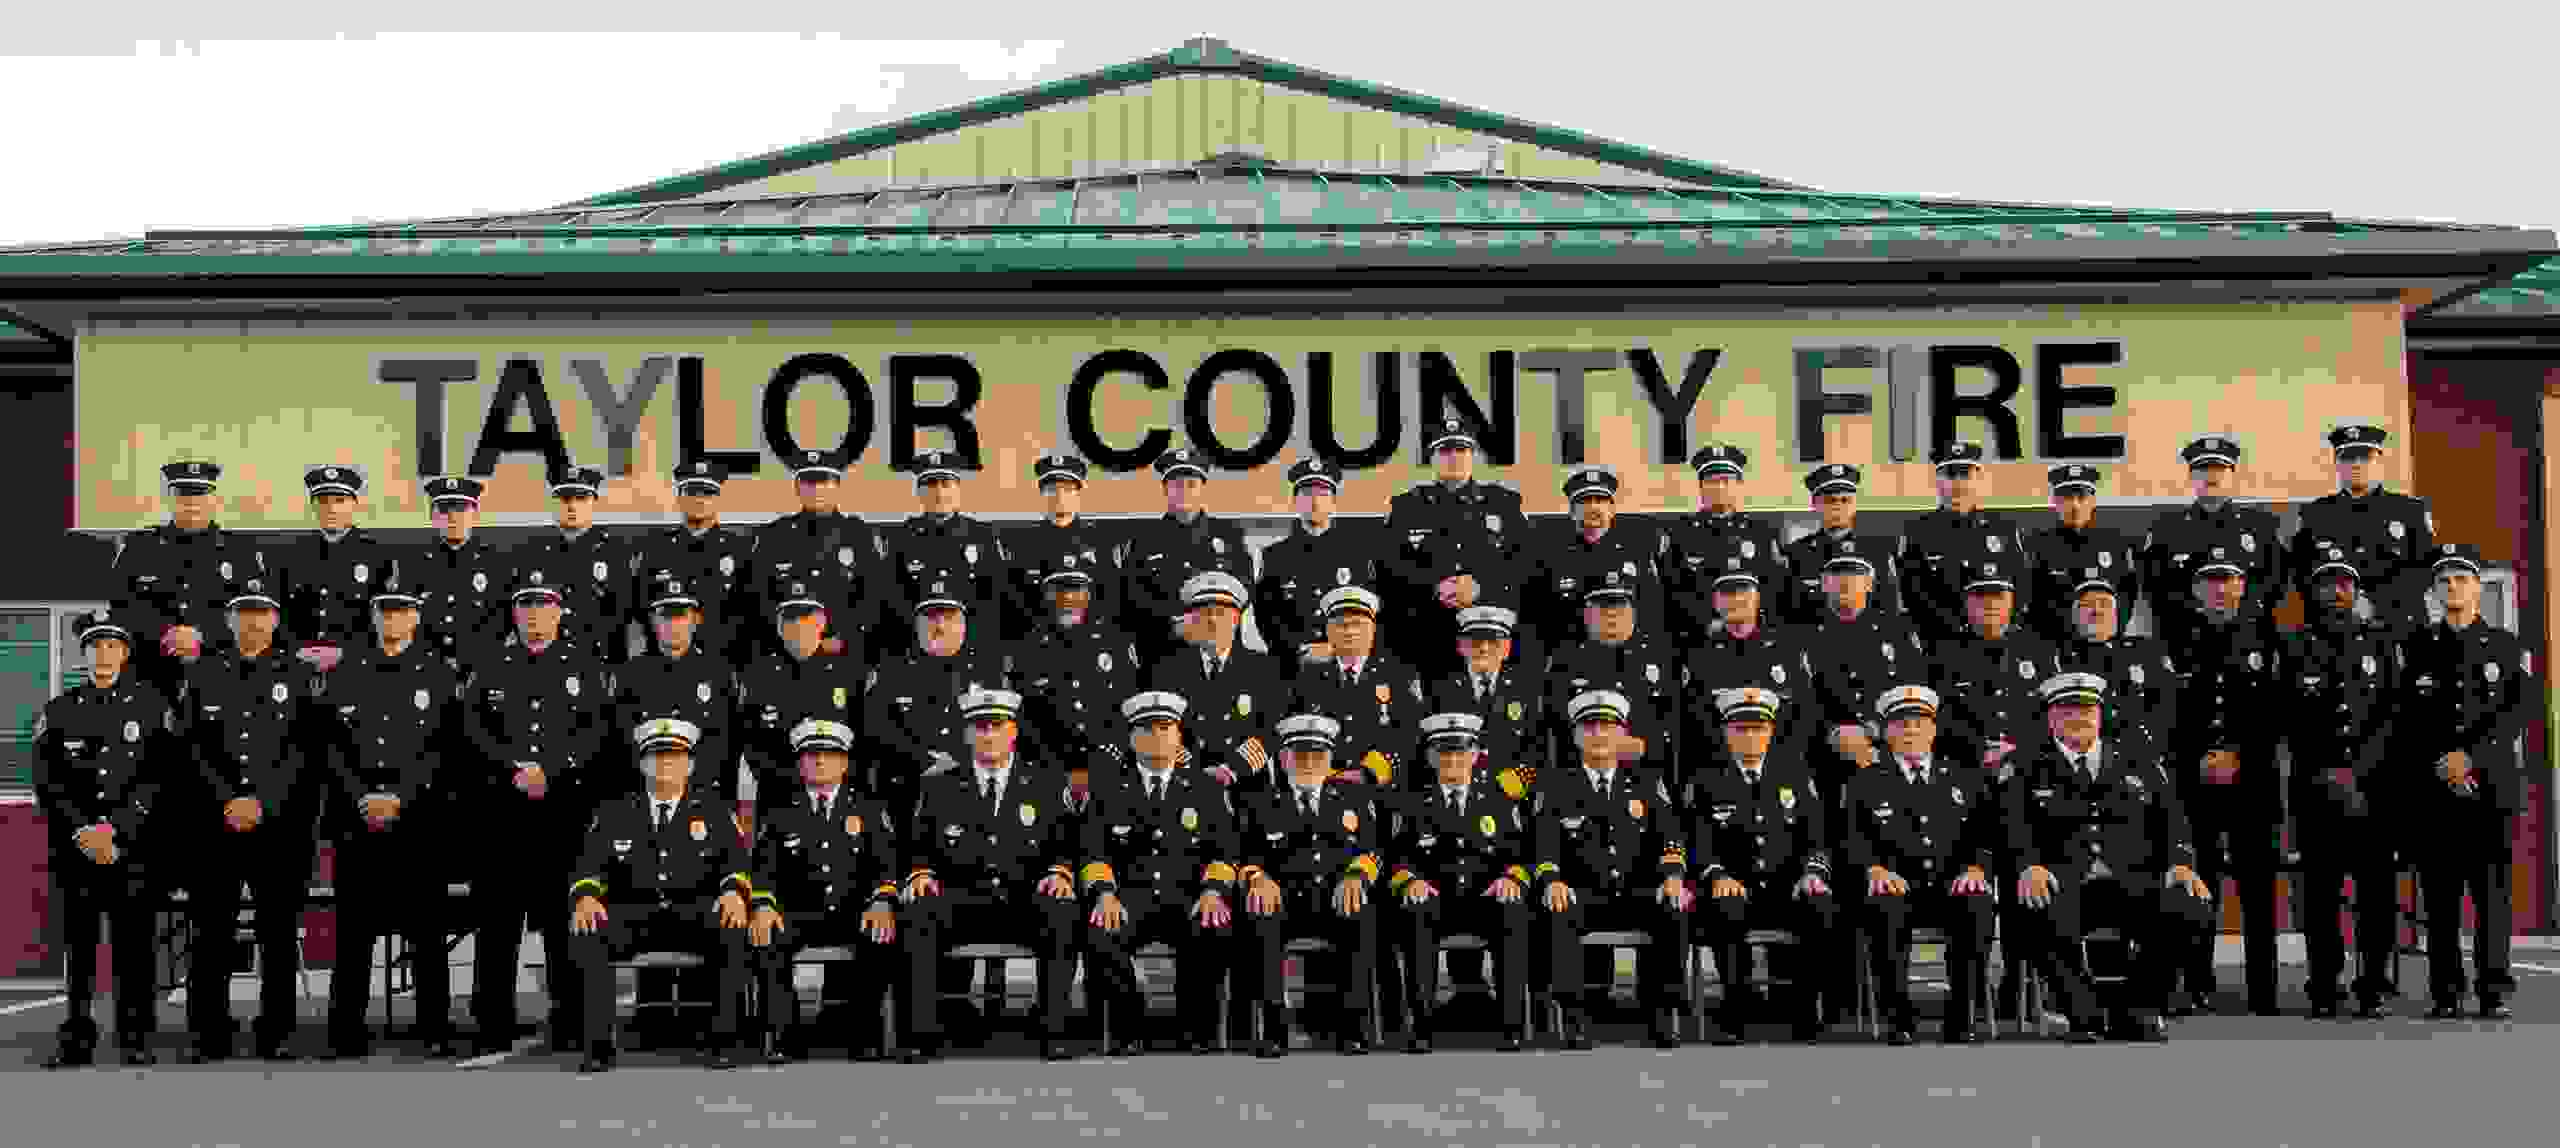 Taylor County Fire Department photo